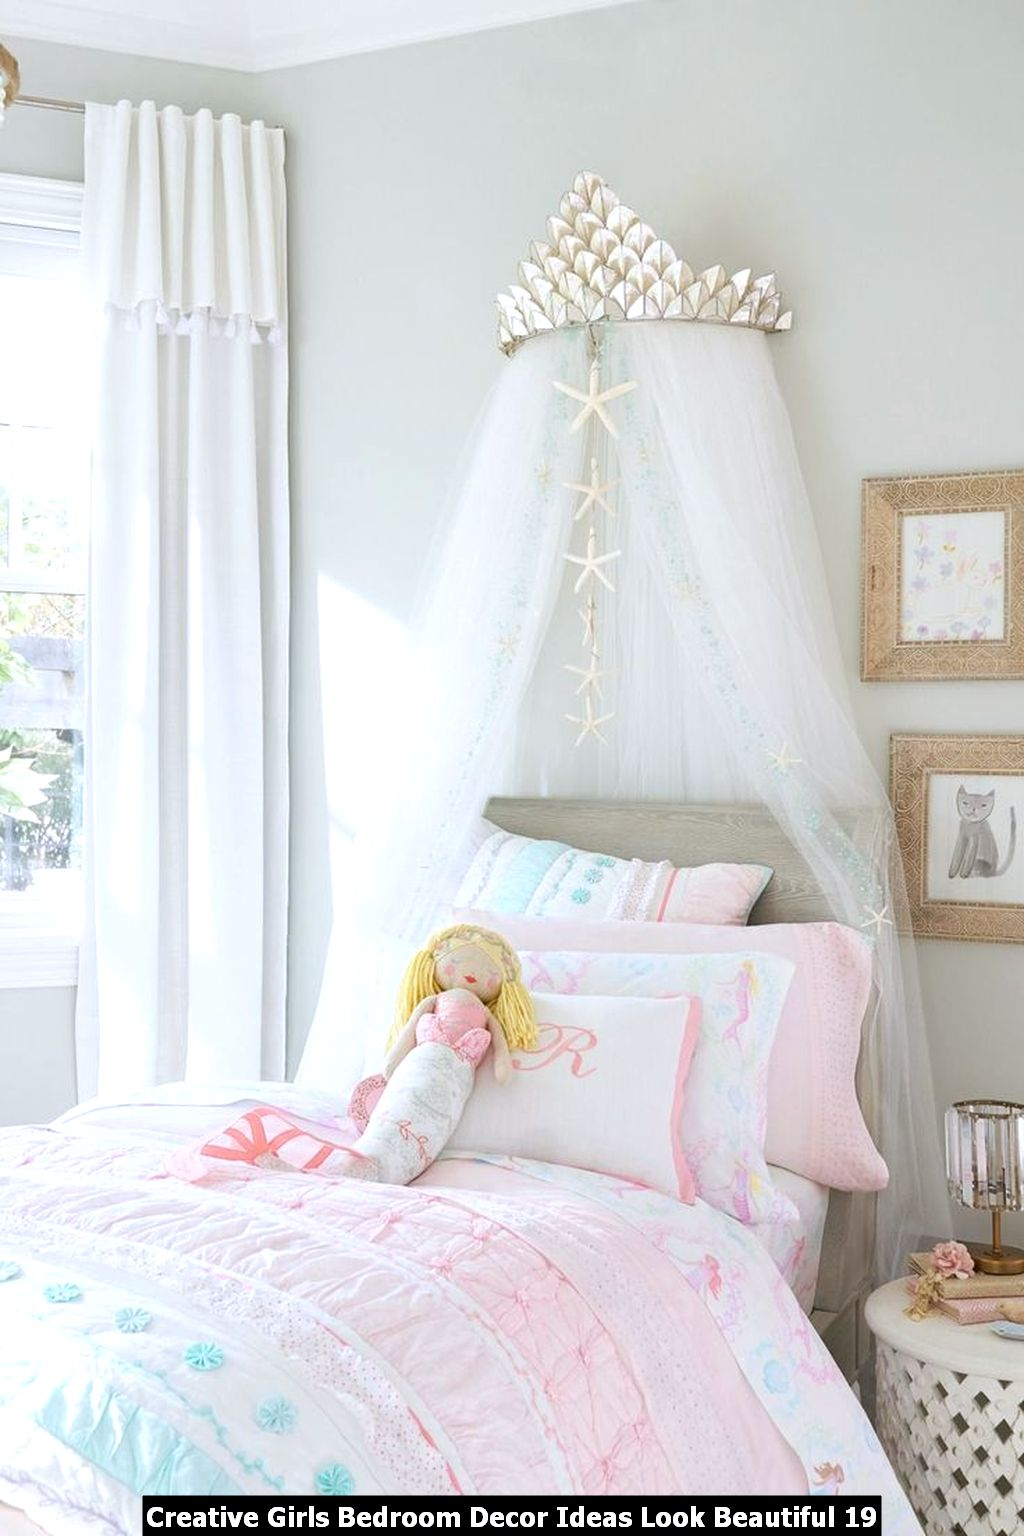 Creative Girls Bedroom Decor Ideas Look Beautiful 19